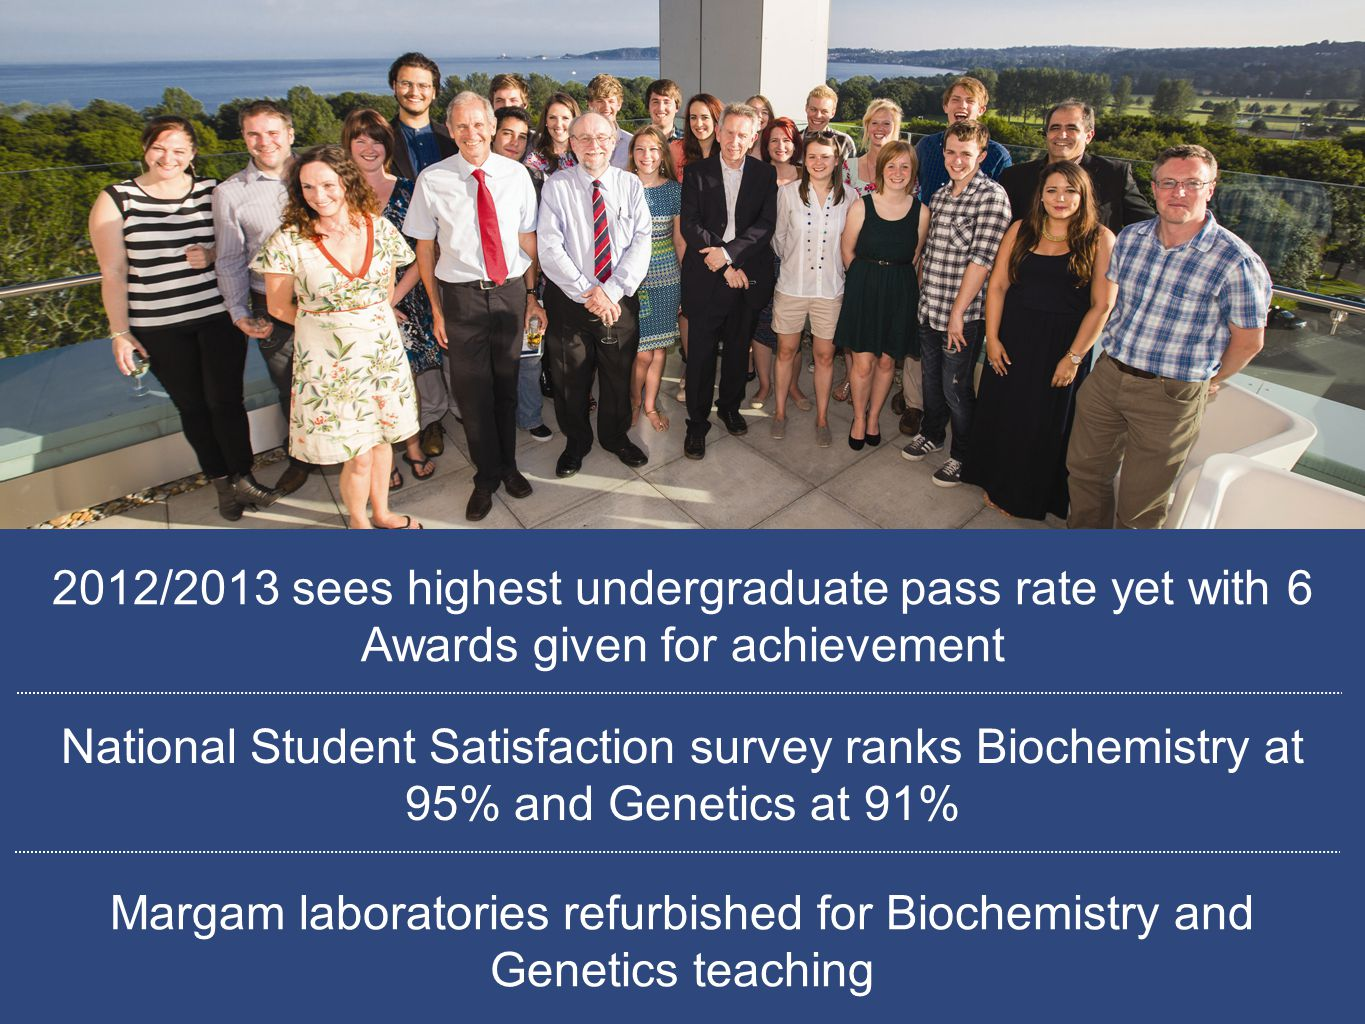 2012/2013 sees highest undergraduate pass rate yet with 6 Awards given for achievement National Student Satisfaction survey ranks Biochemistry at 95%